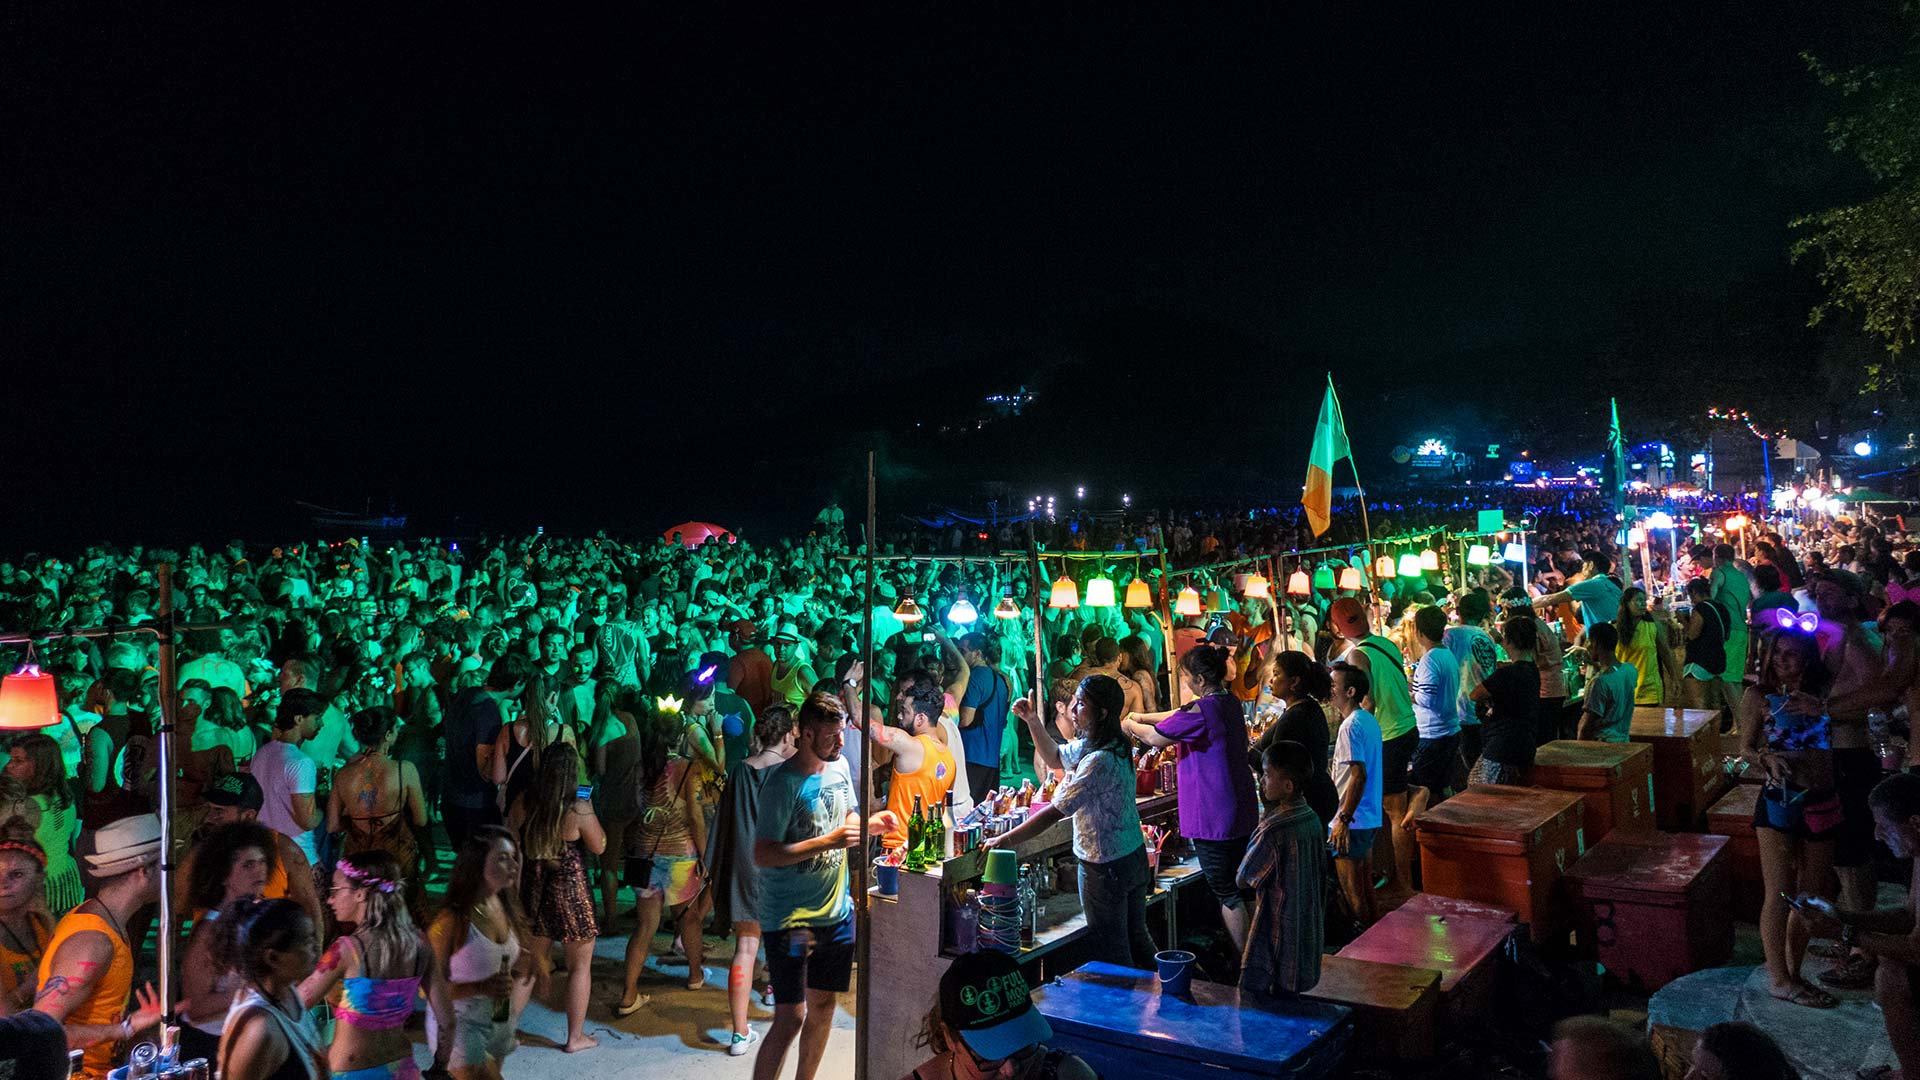 Moon Calendar February 2020 Thailand Full Moon Party Koh Phangan 2019 – all dates & information